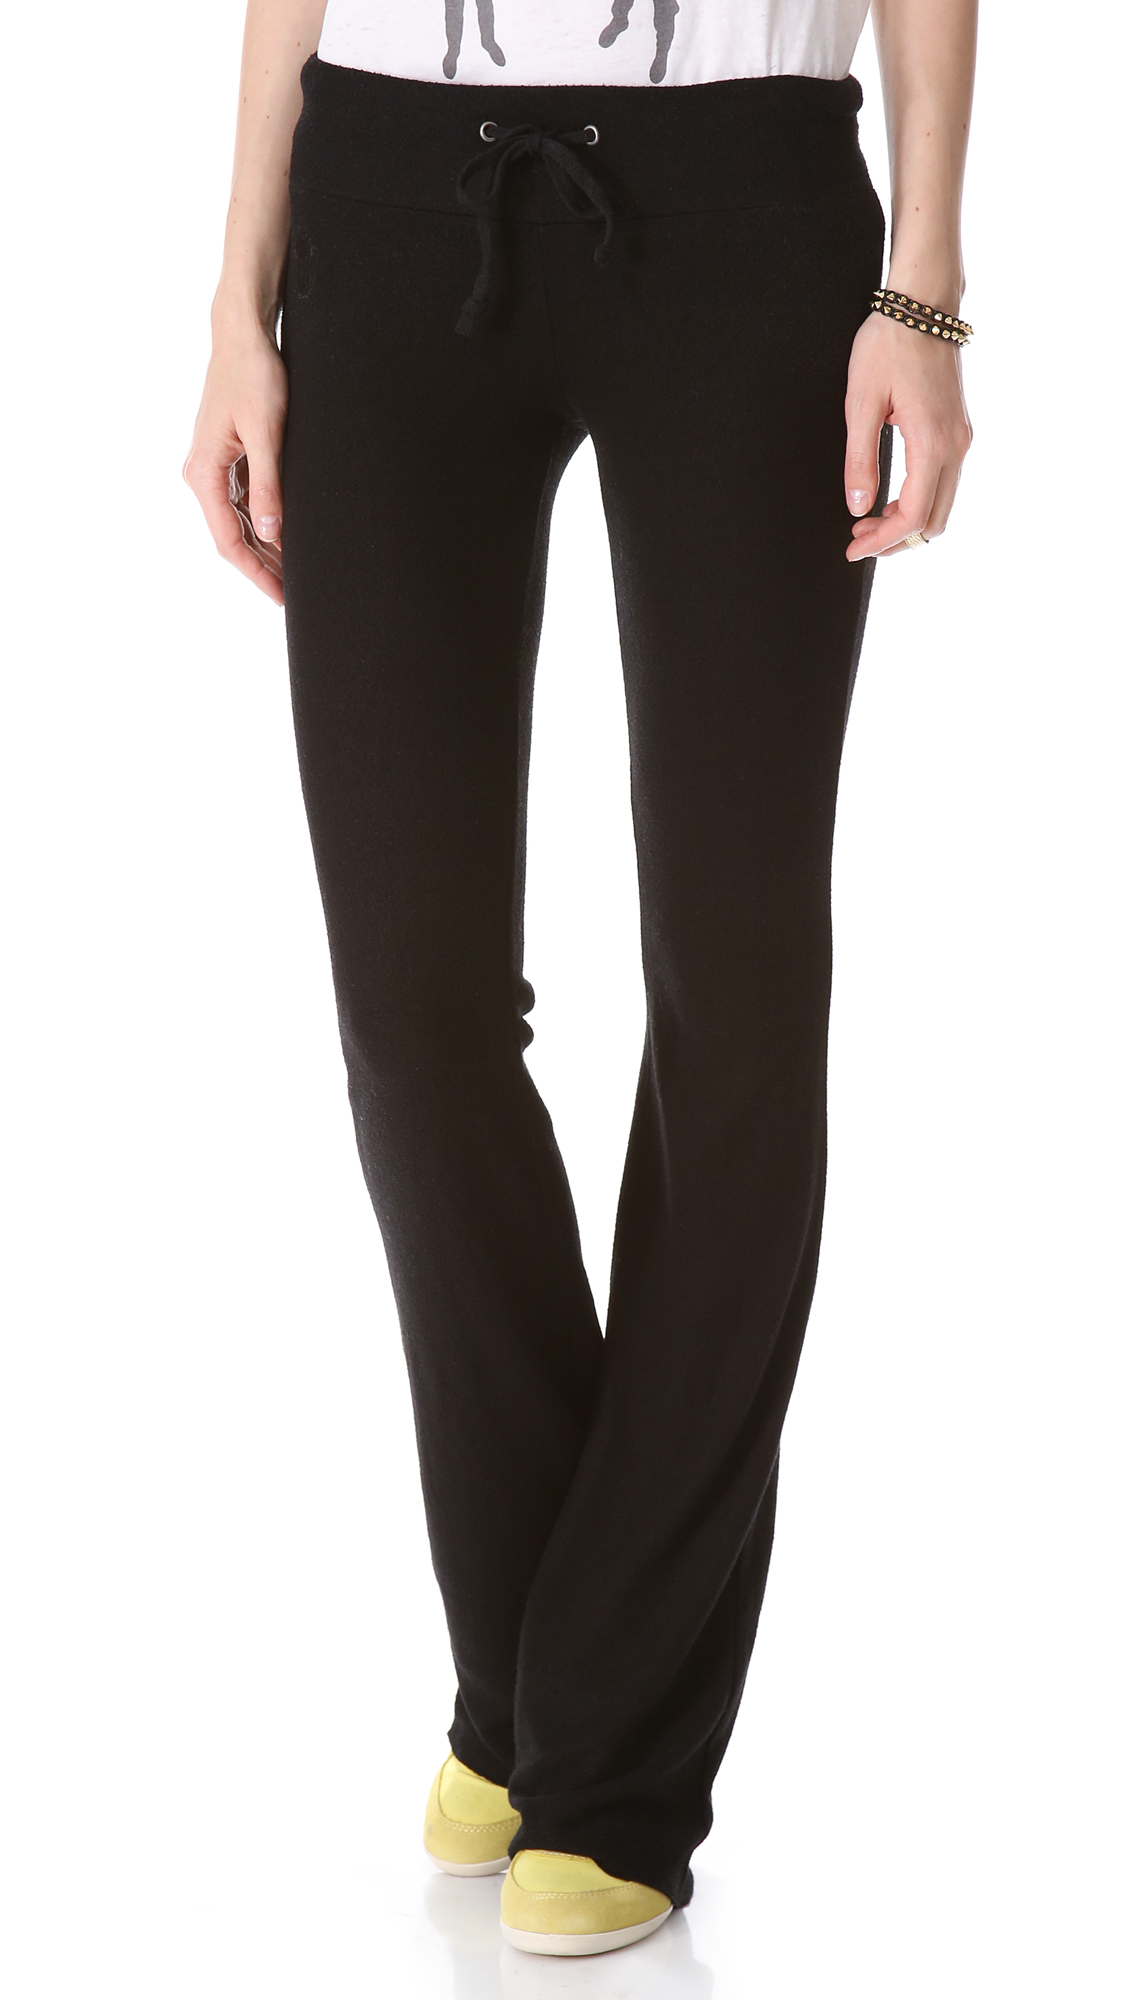 Wildfox Synthetic Basic Flare Sweatpants in Black - Lyst